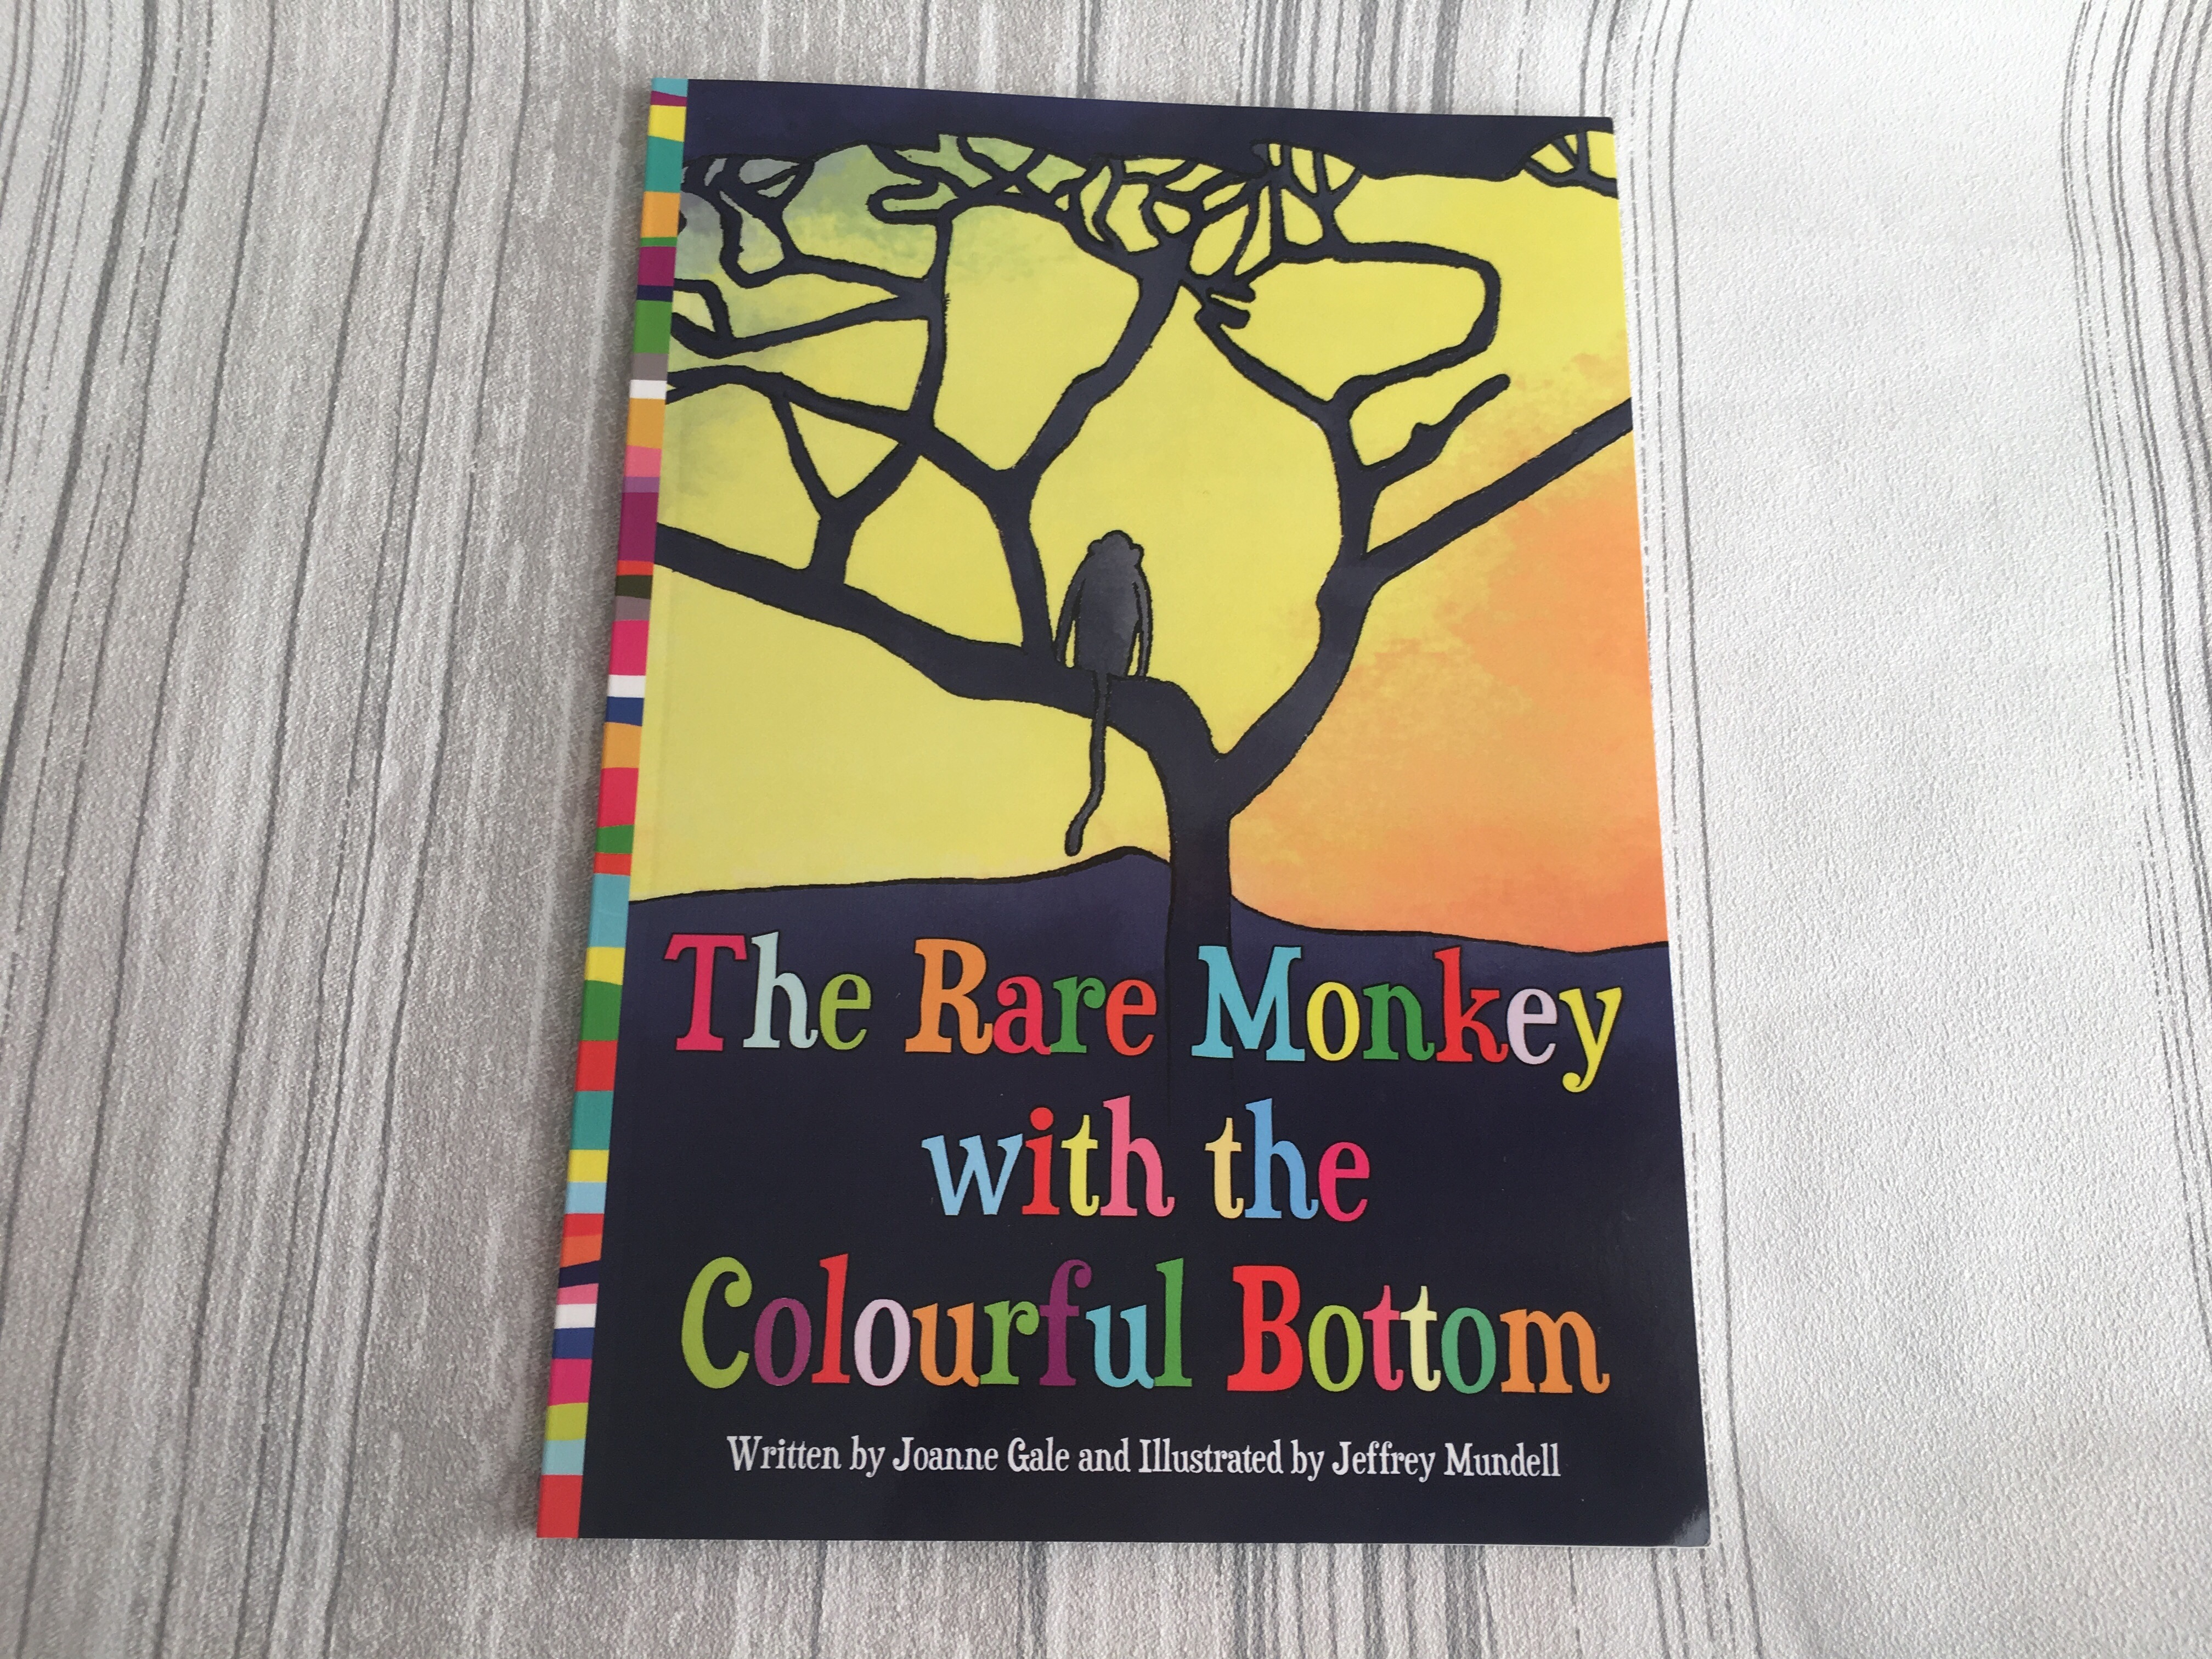 The Rare Monkey with the Colourful Bottom